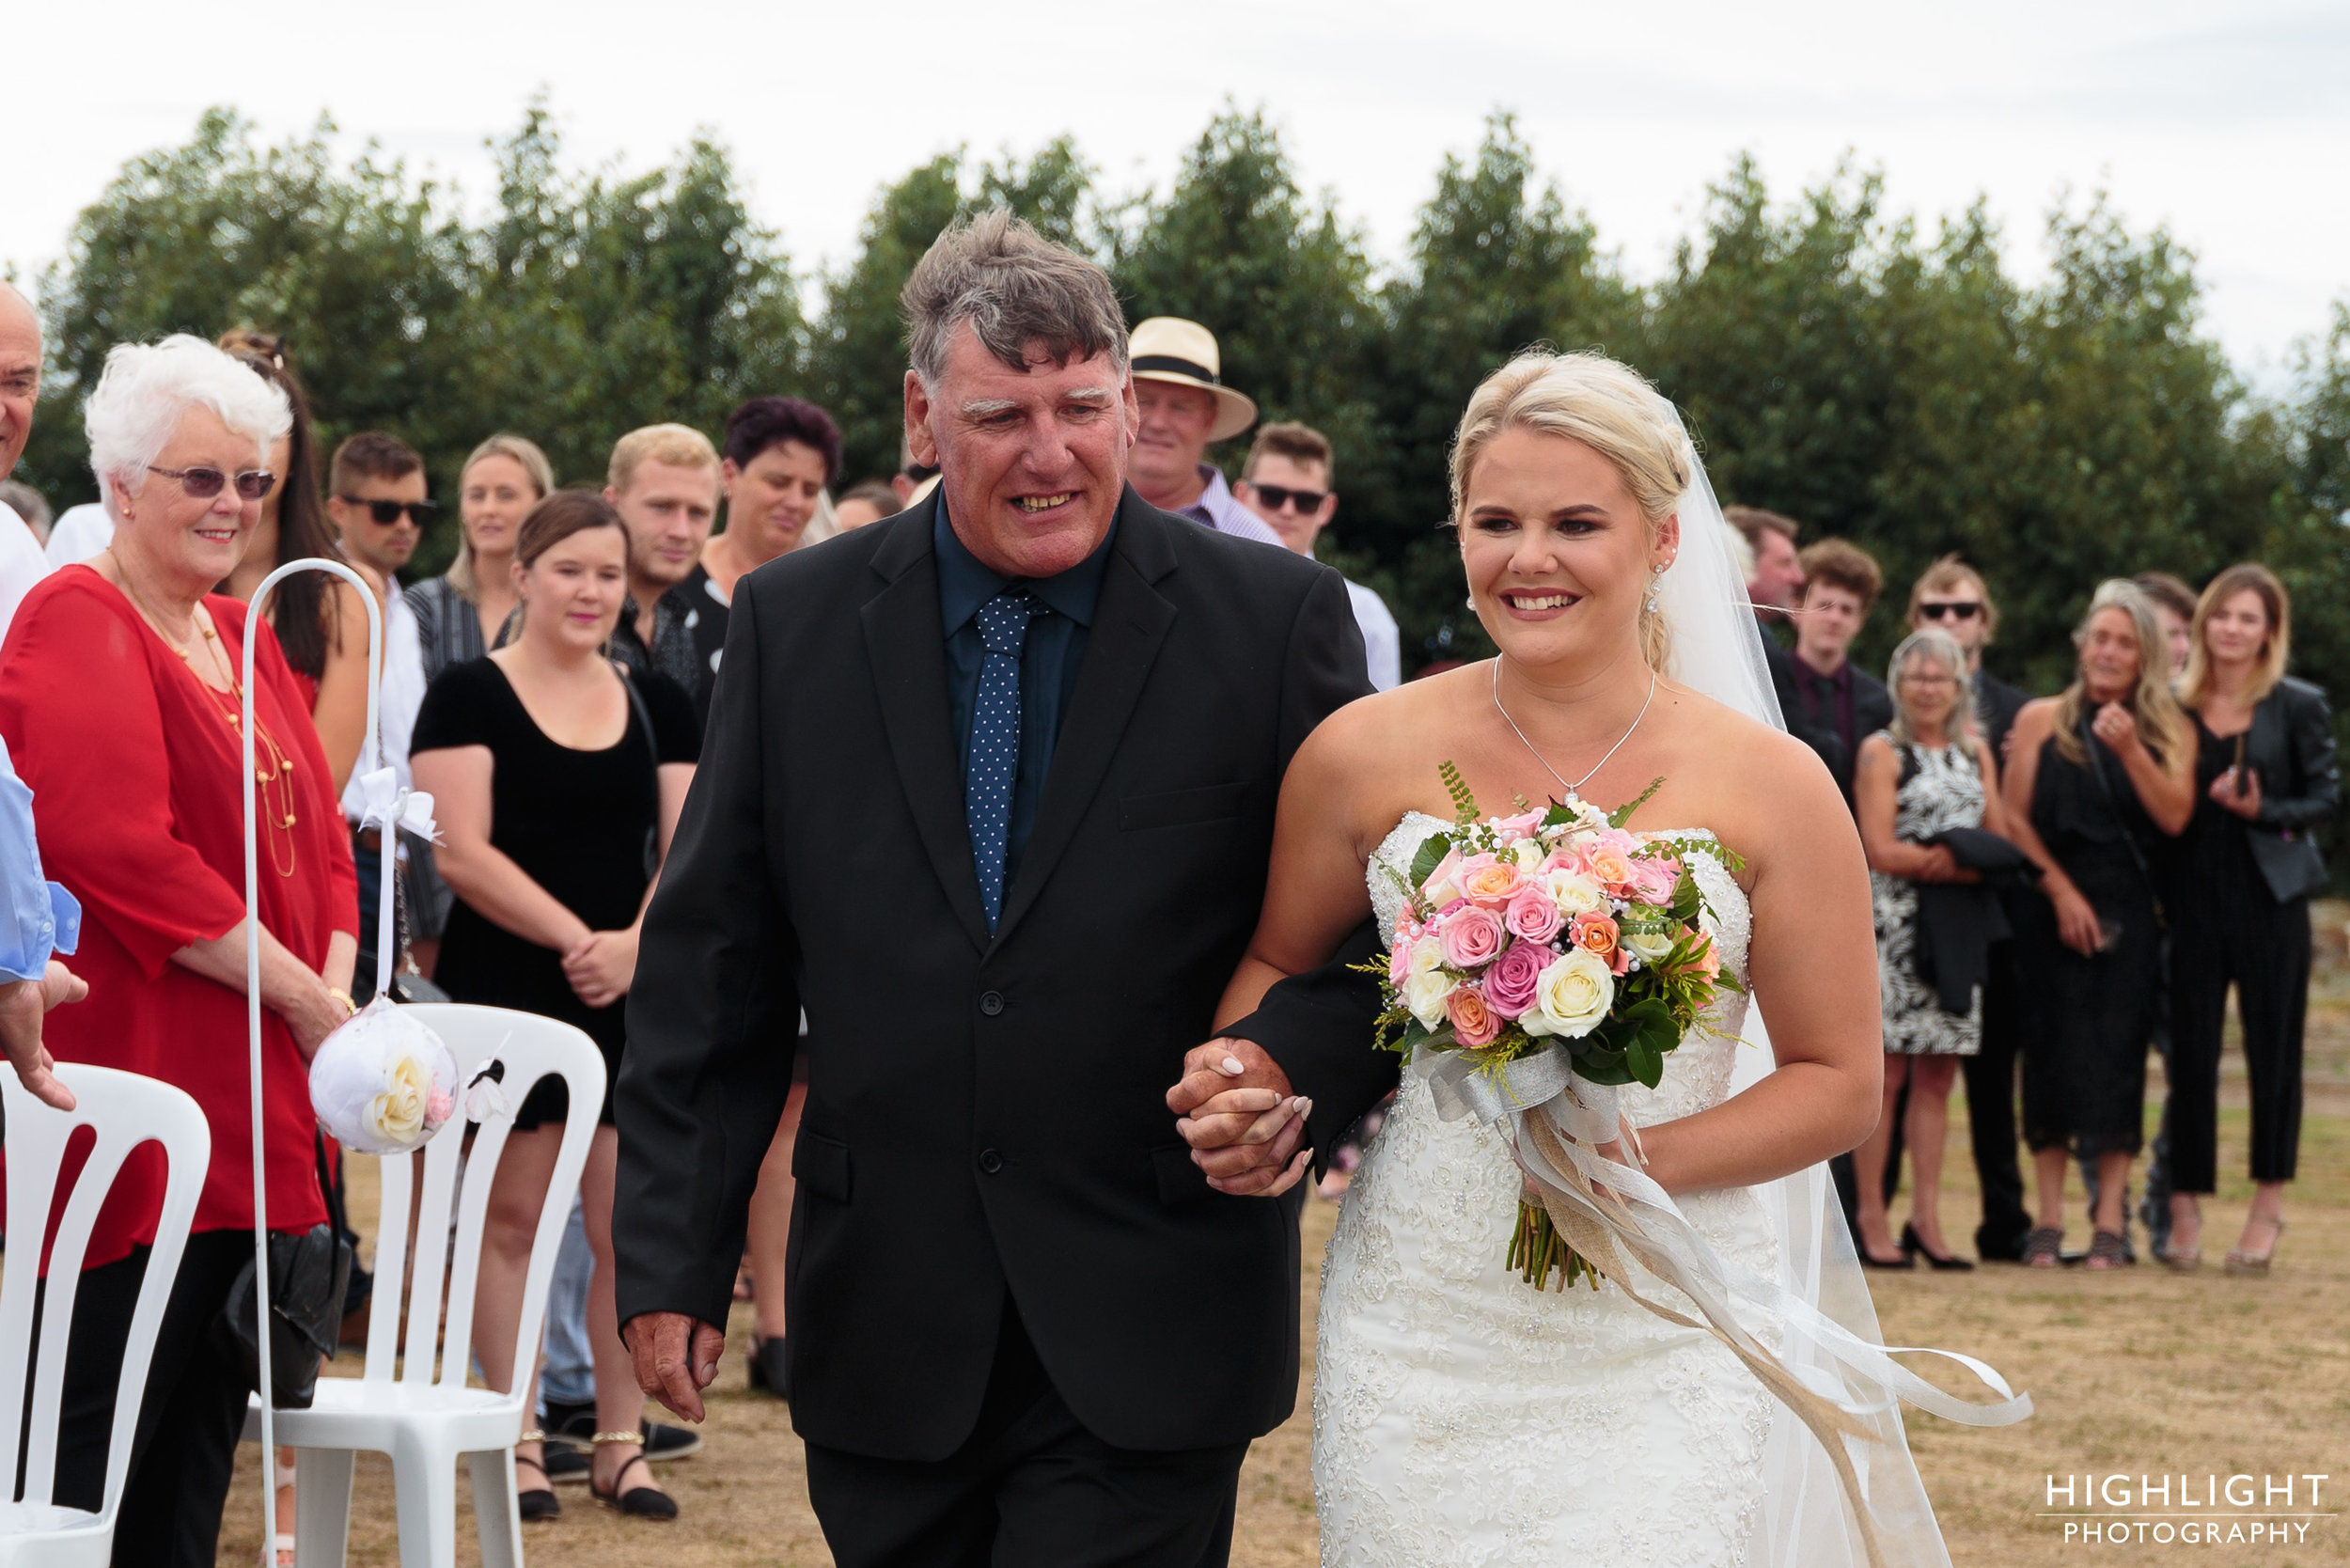 highlight-wedding-photography-new-zealand-cs-orlando-country-wedding-palmerston-north-79.jpg